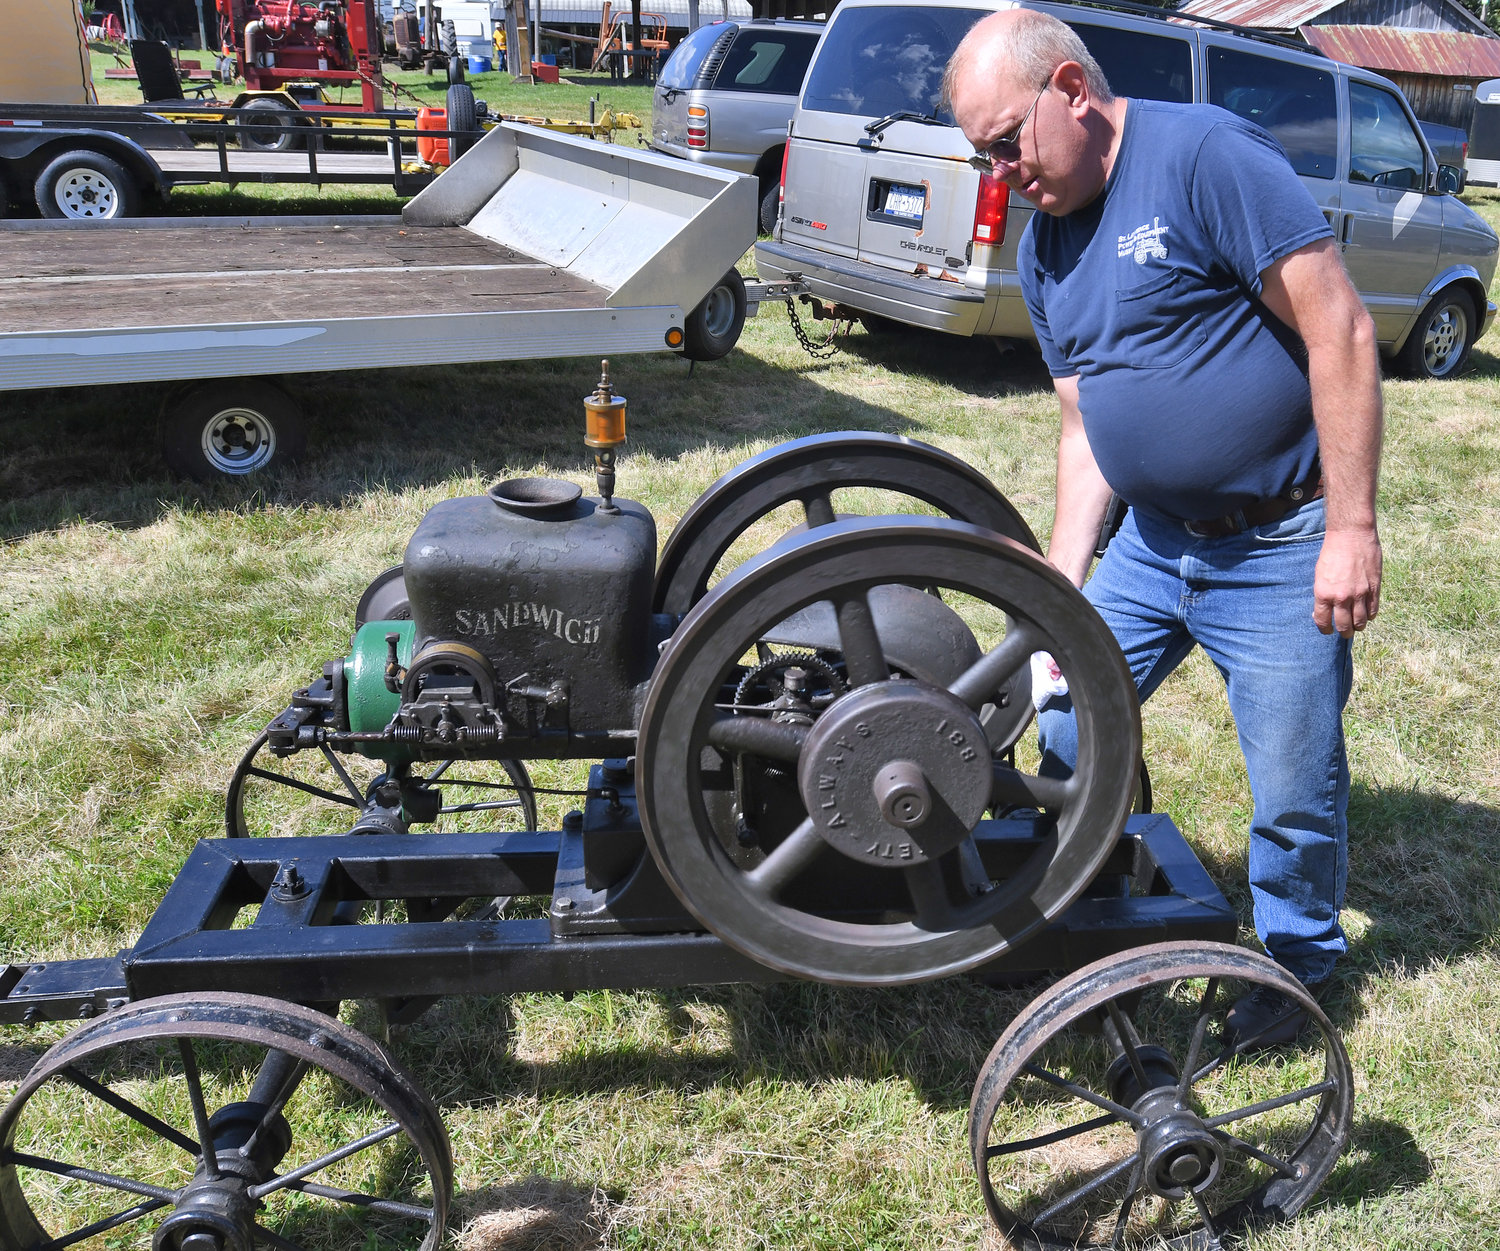 HIT AND MISS ENGINE — John Smith of Gouverneur puts stress on the flywheel of his 1917 Sandwich hit and miss engine to make it work harder and with more hits on Friday during the 44th annual Old Time Gas Engines, Tractors and Truck Show at the Flywheels and Pulleys Club in Constableville. The event is a fundraiser to support the nonprofit club.